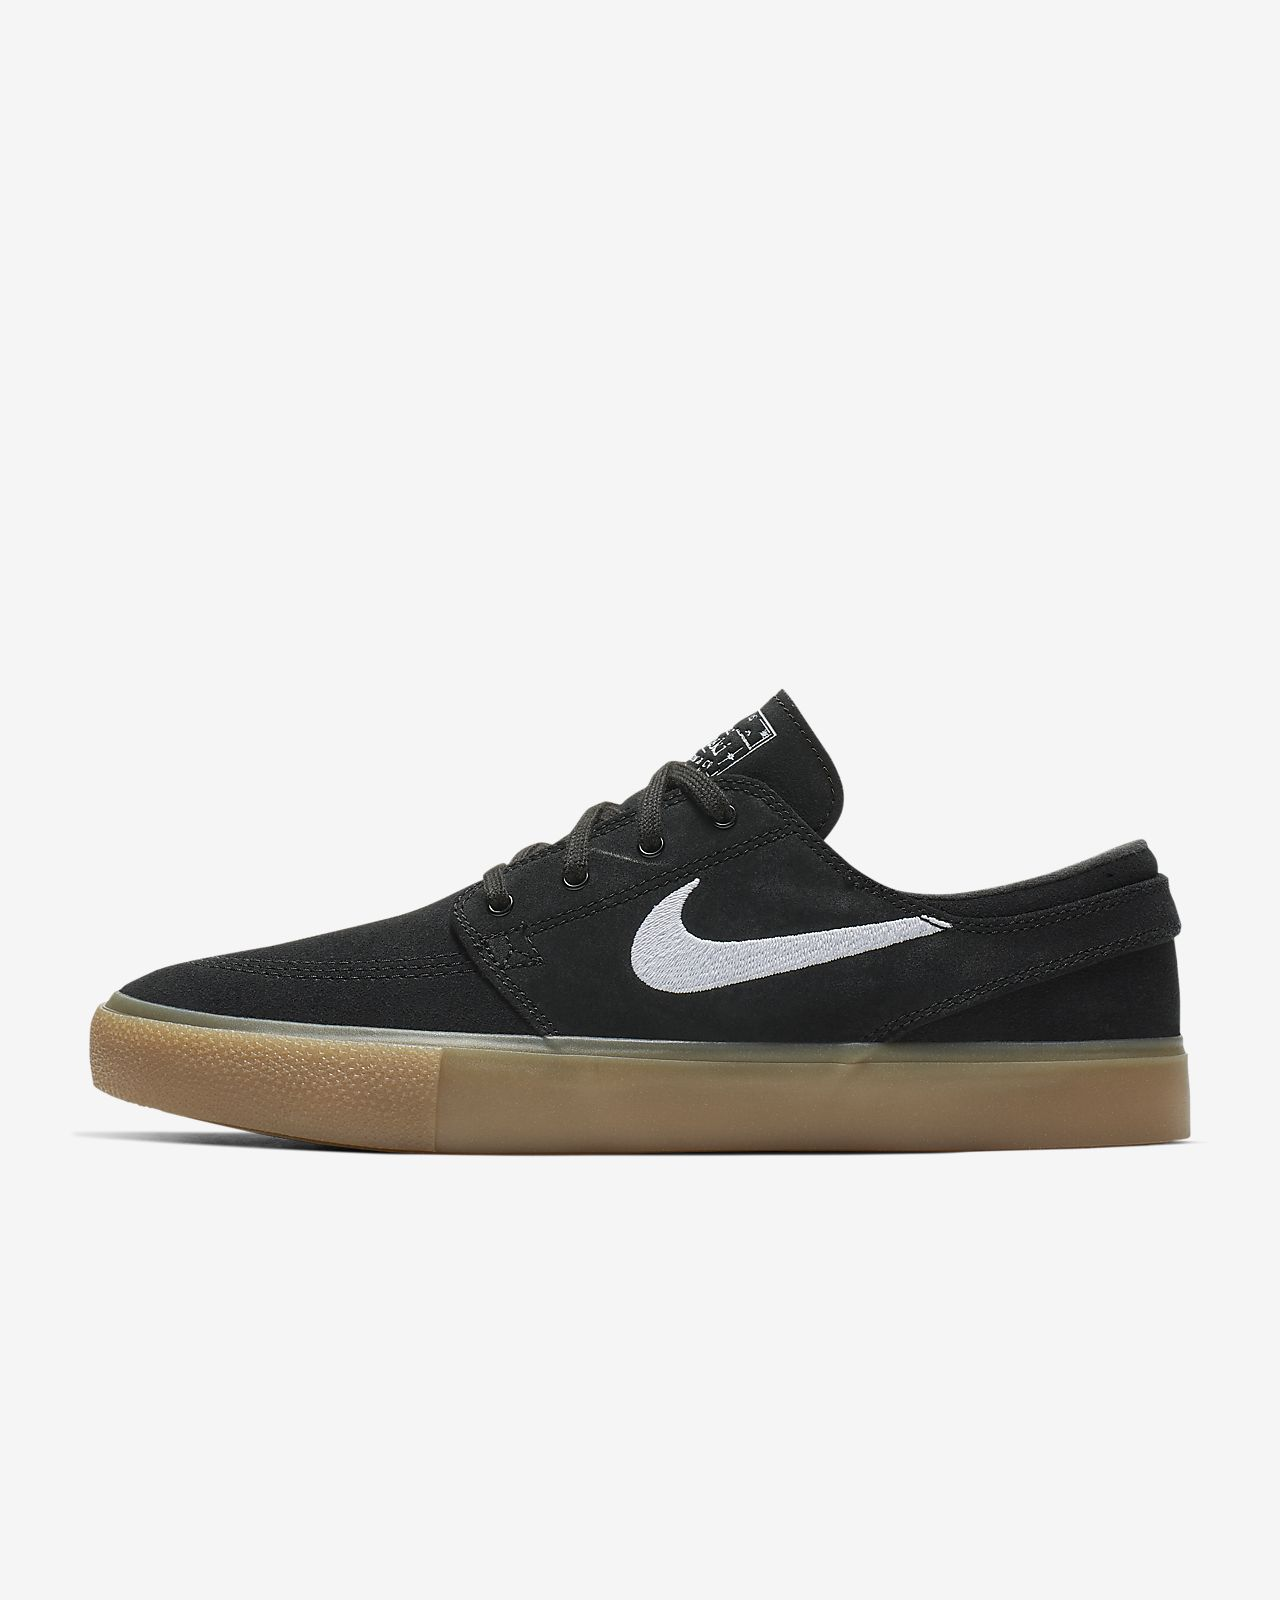 nike skateboarding shoes janoski